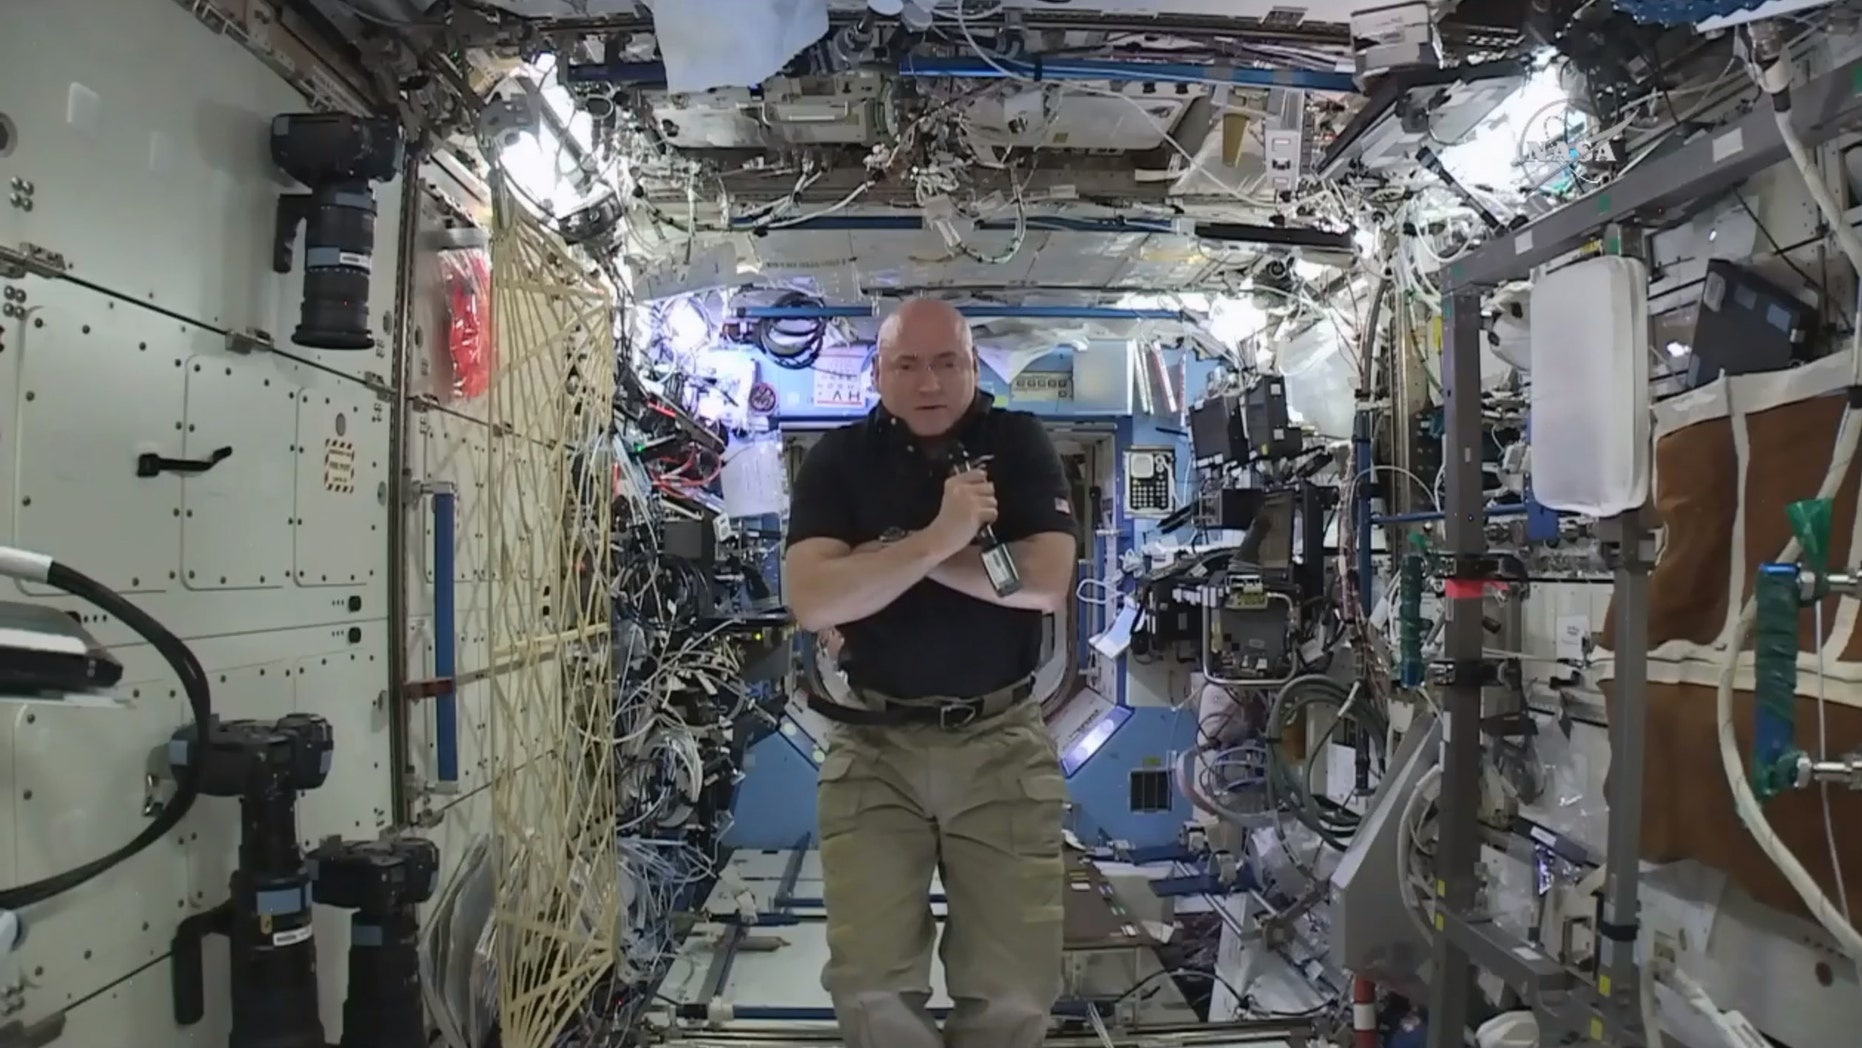 In this image from video made available by NASA, astronaut Scott Kelly speaks to reporters on Earth during a news conference held on the International Space Station on Thursday, Feb. 25, 2016. After nearly a year in space, Kelly is just a few days away from returning to Earth. He'll leave Tuesday on a Russian Soyuz capsule back to the planet to end NASA's longest space flight ever. (NASA via AP)